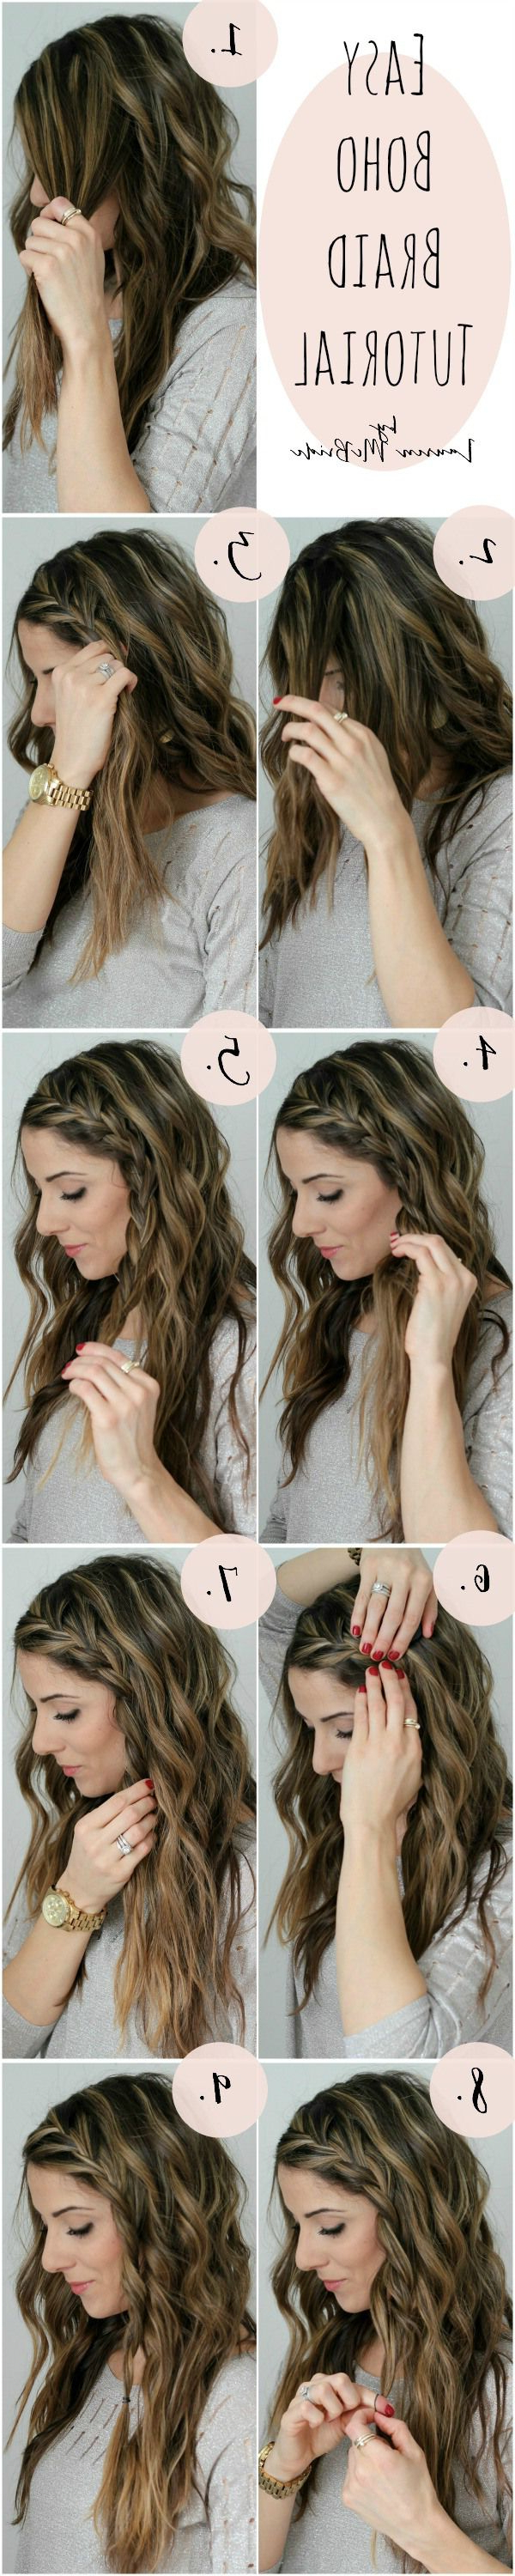 30 Boho Chic Hairstyles For 2019 – Pretty Designs Intended For Latest Boho Medium Hairstyles (Gallery 17 of 20)